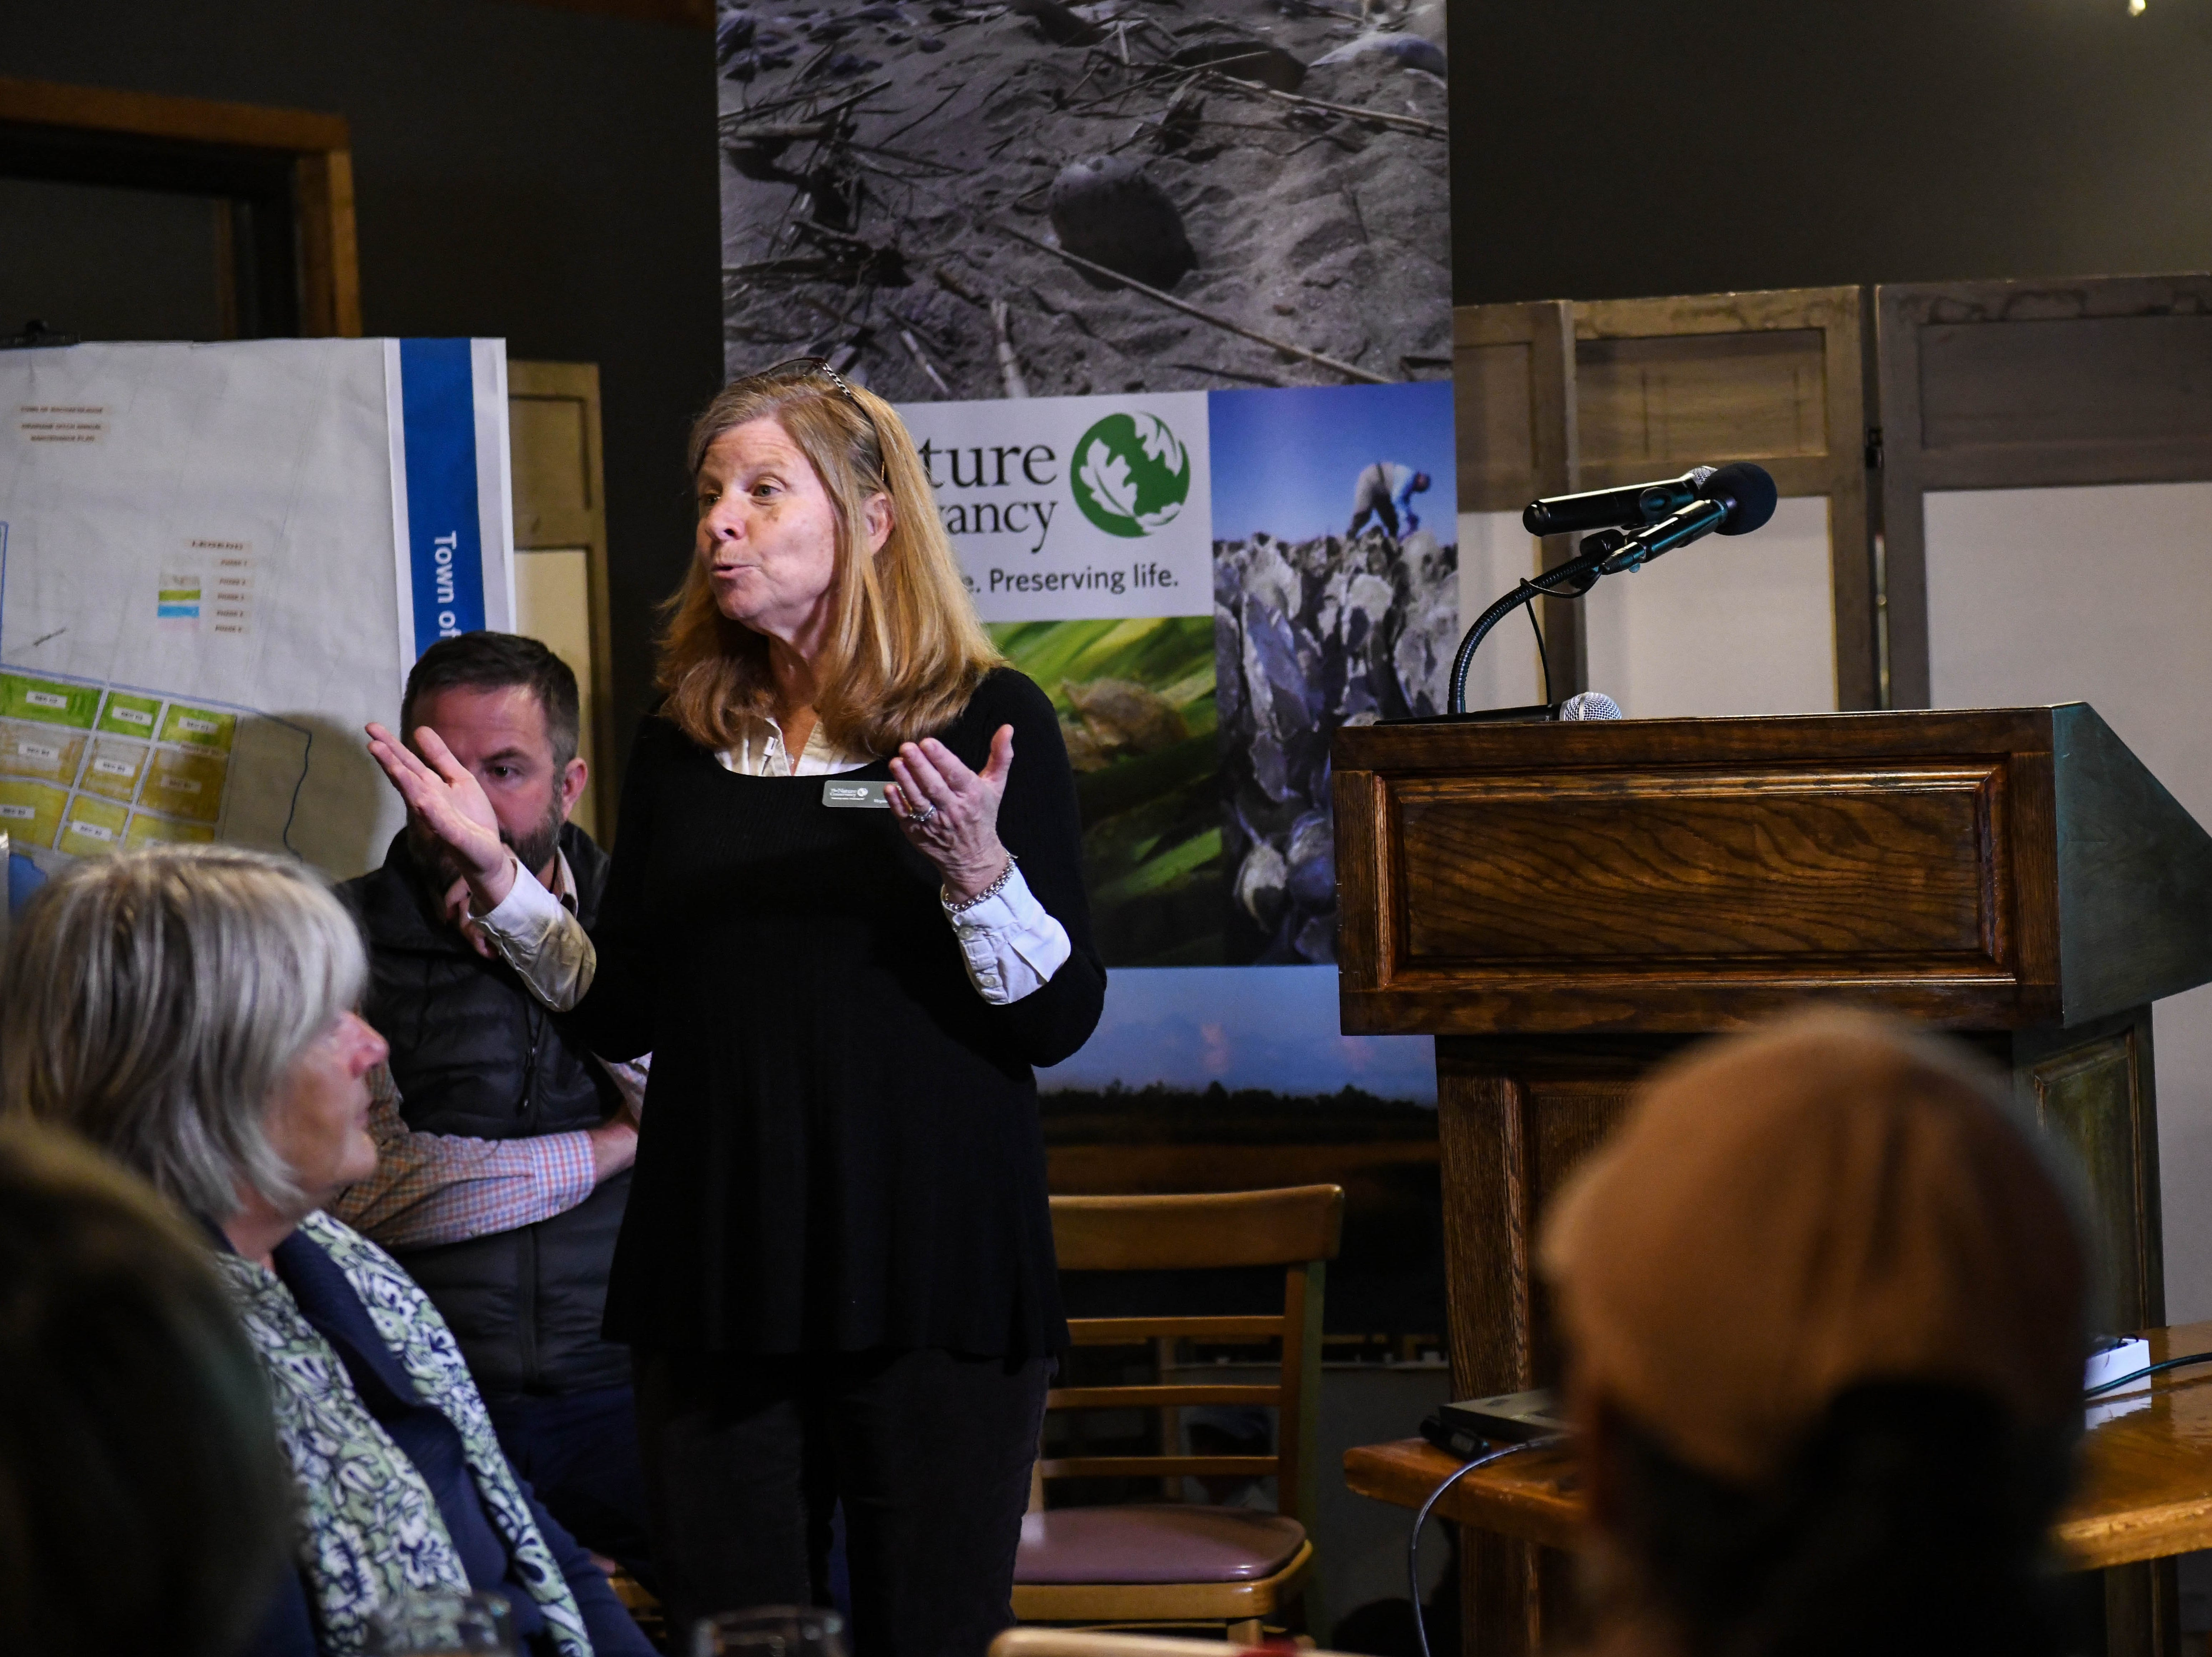 Jill Bieri, director of the Virginia Coast Reserve, presents about flooding and sea level rise at a community meeting in Wachapreague, Virginia led by the Nature Conservancy on Monday, March 4, 2019.